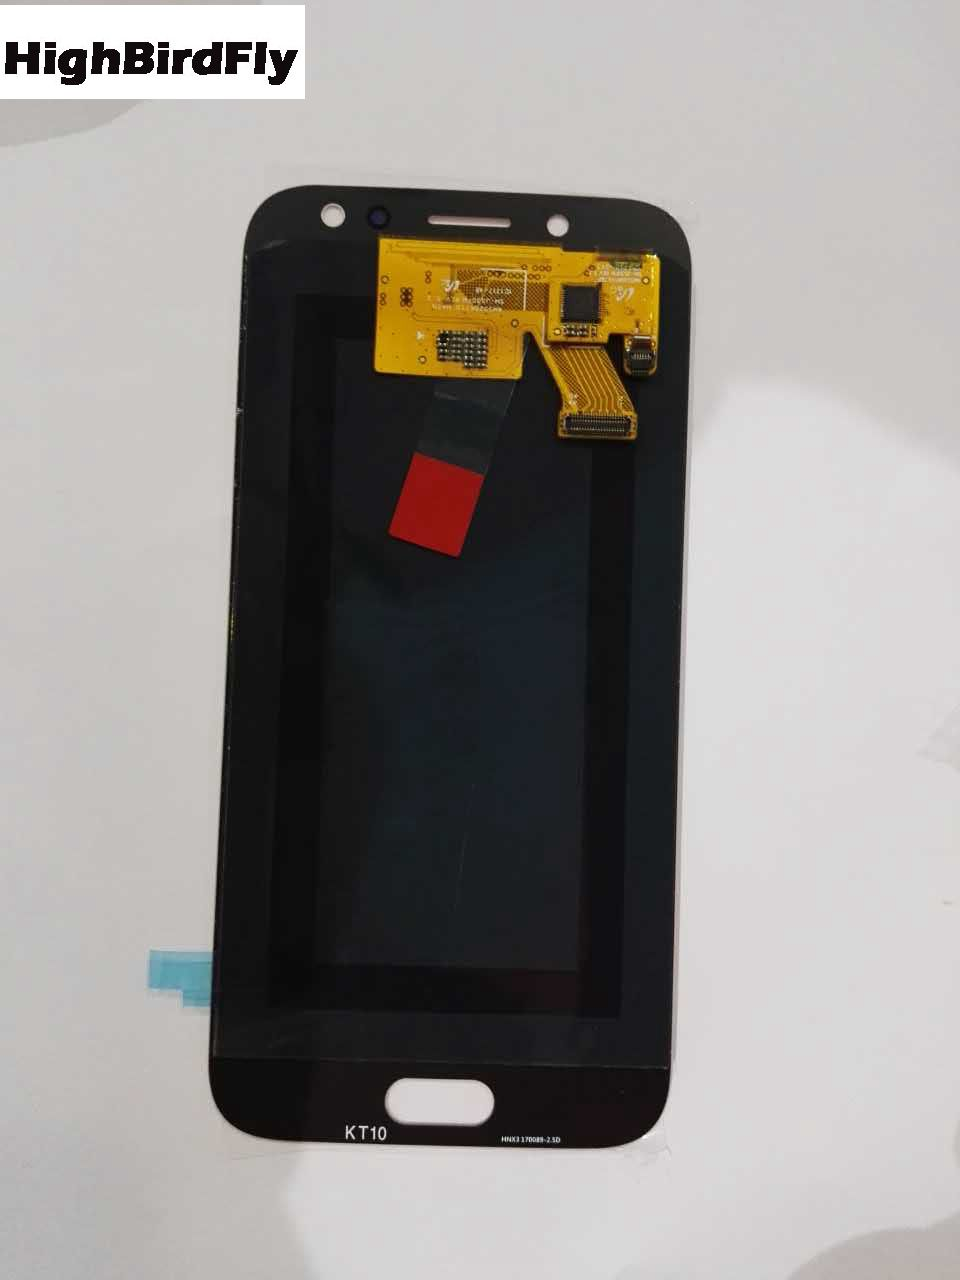 Amoled For Samsung Galaxy <font><b>J7</b></font> 2017 J730 J730F J730M J730Y Lcd Screen Display WIth Touch Glass DIgitizer Assembly Replacement Part